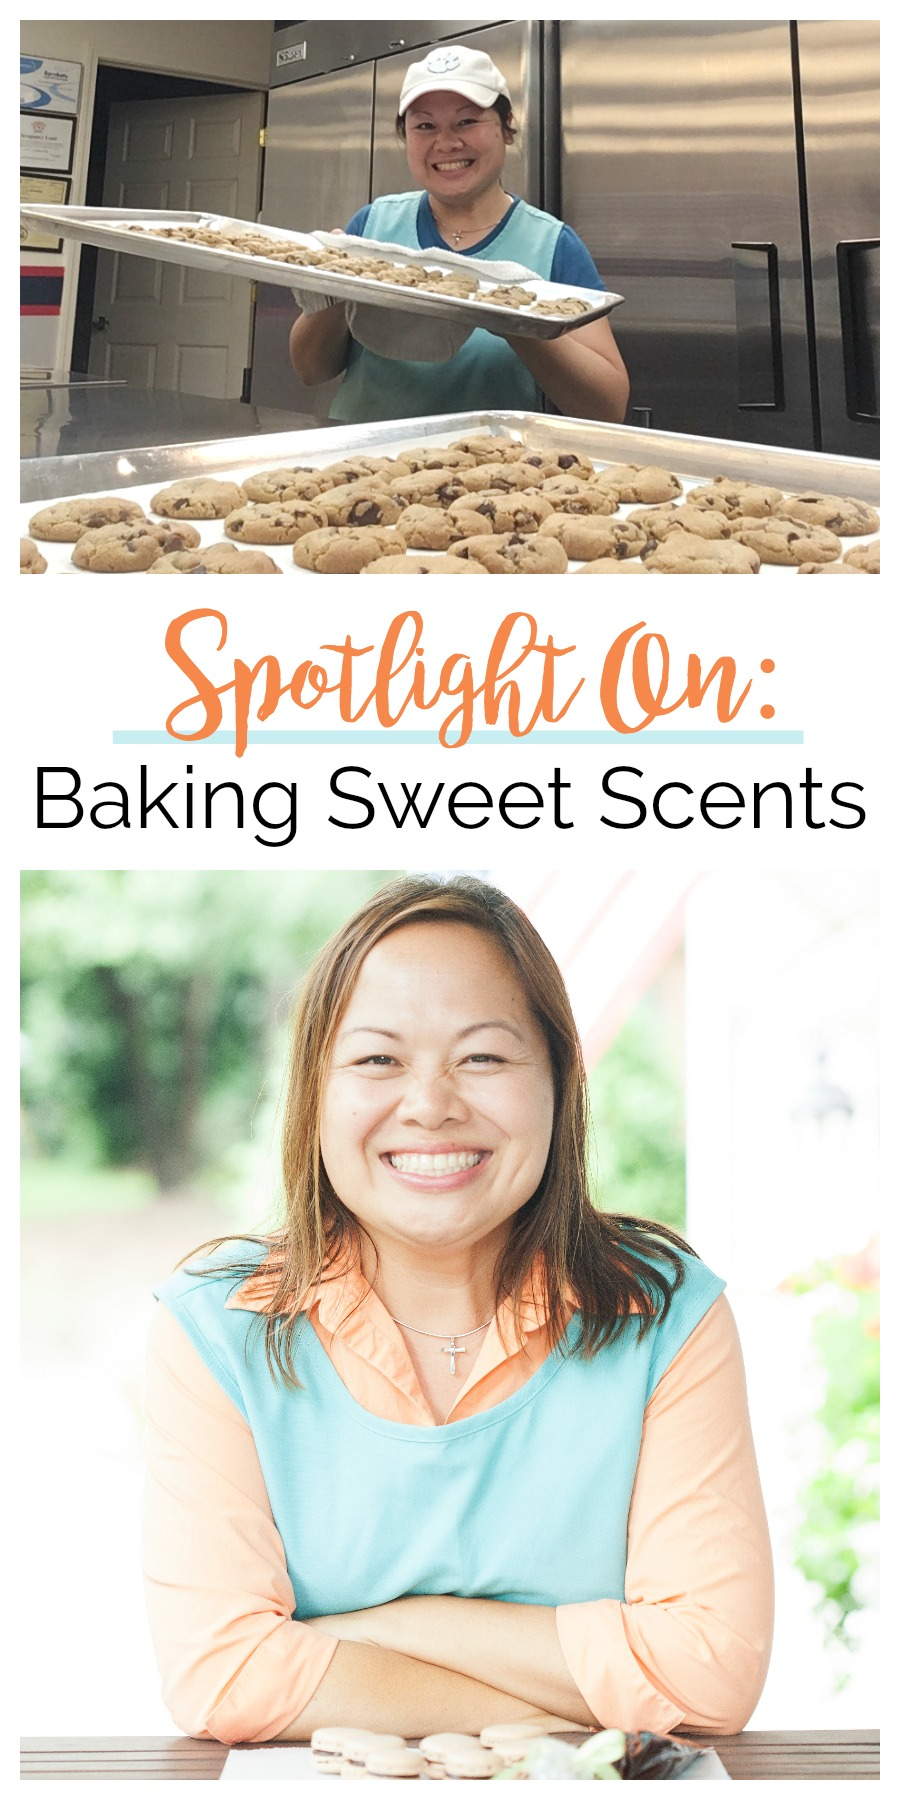 Spotlight On: Baking Sweet Scents | Palmetto State Weddings